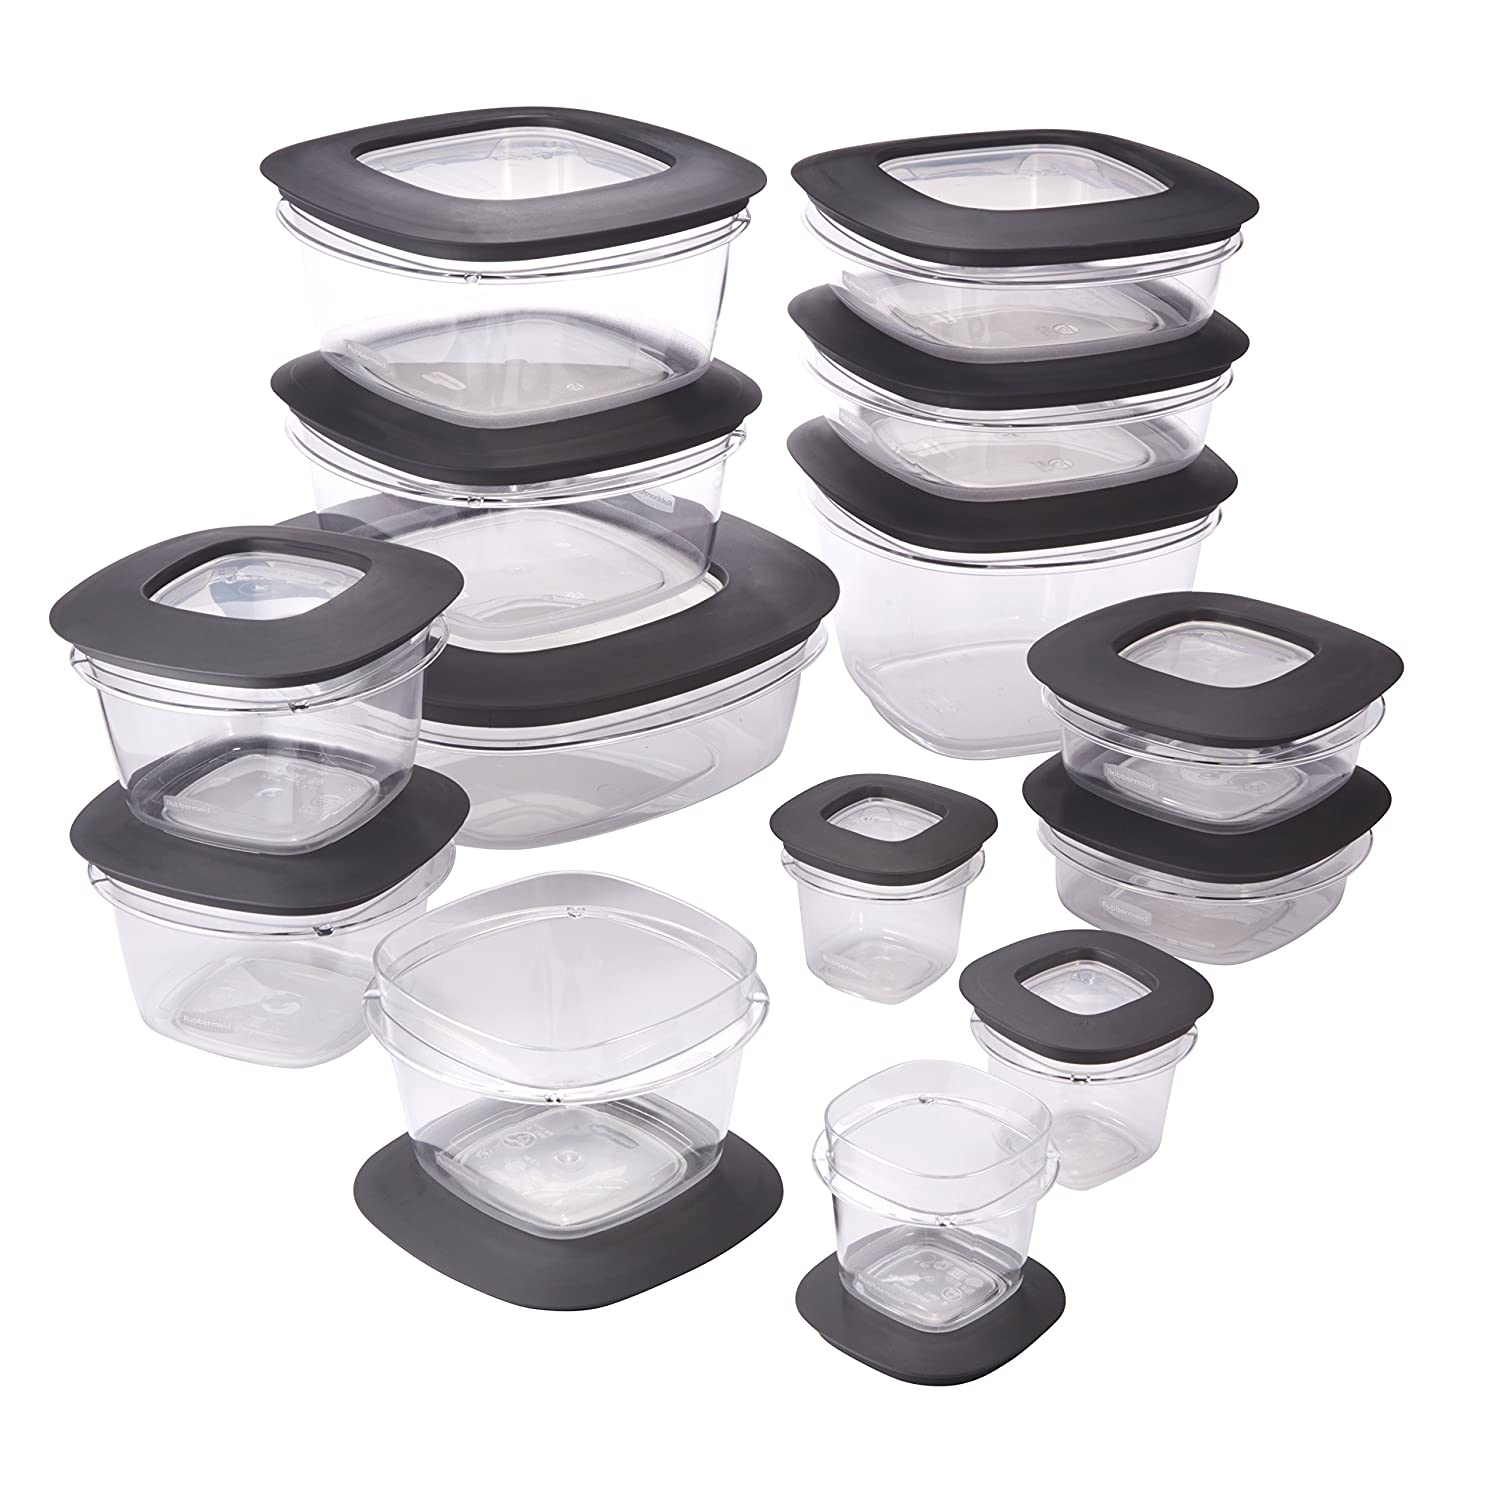 Food & Beverage Storage,Amazon.com